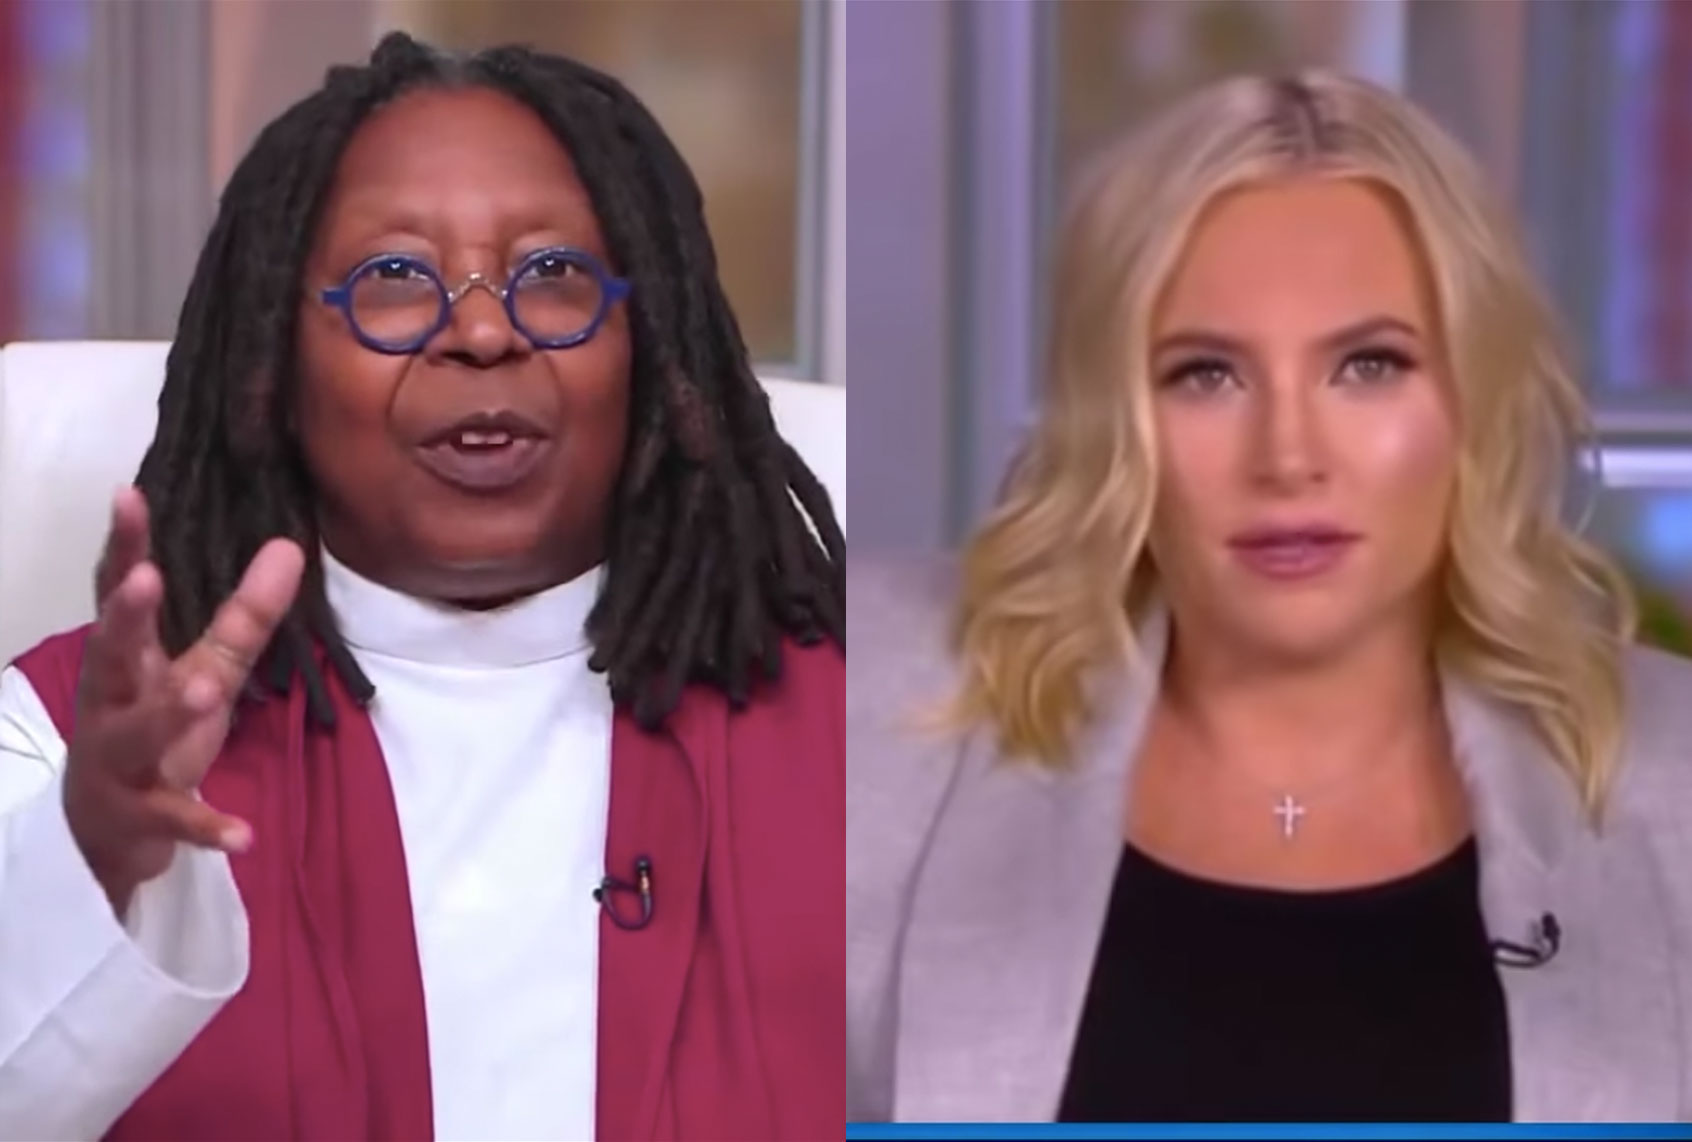 """Republicans brought this on themselves"": Whoopi Goldberg shuts down Meghan McCain on GOP extremism"